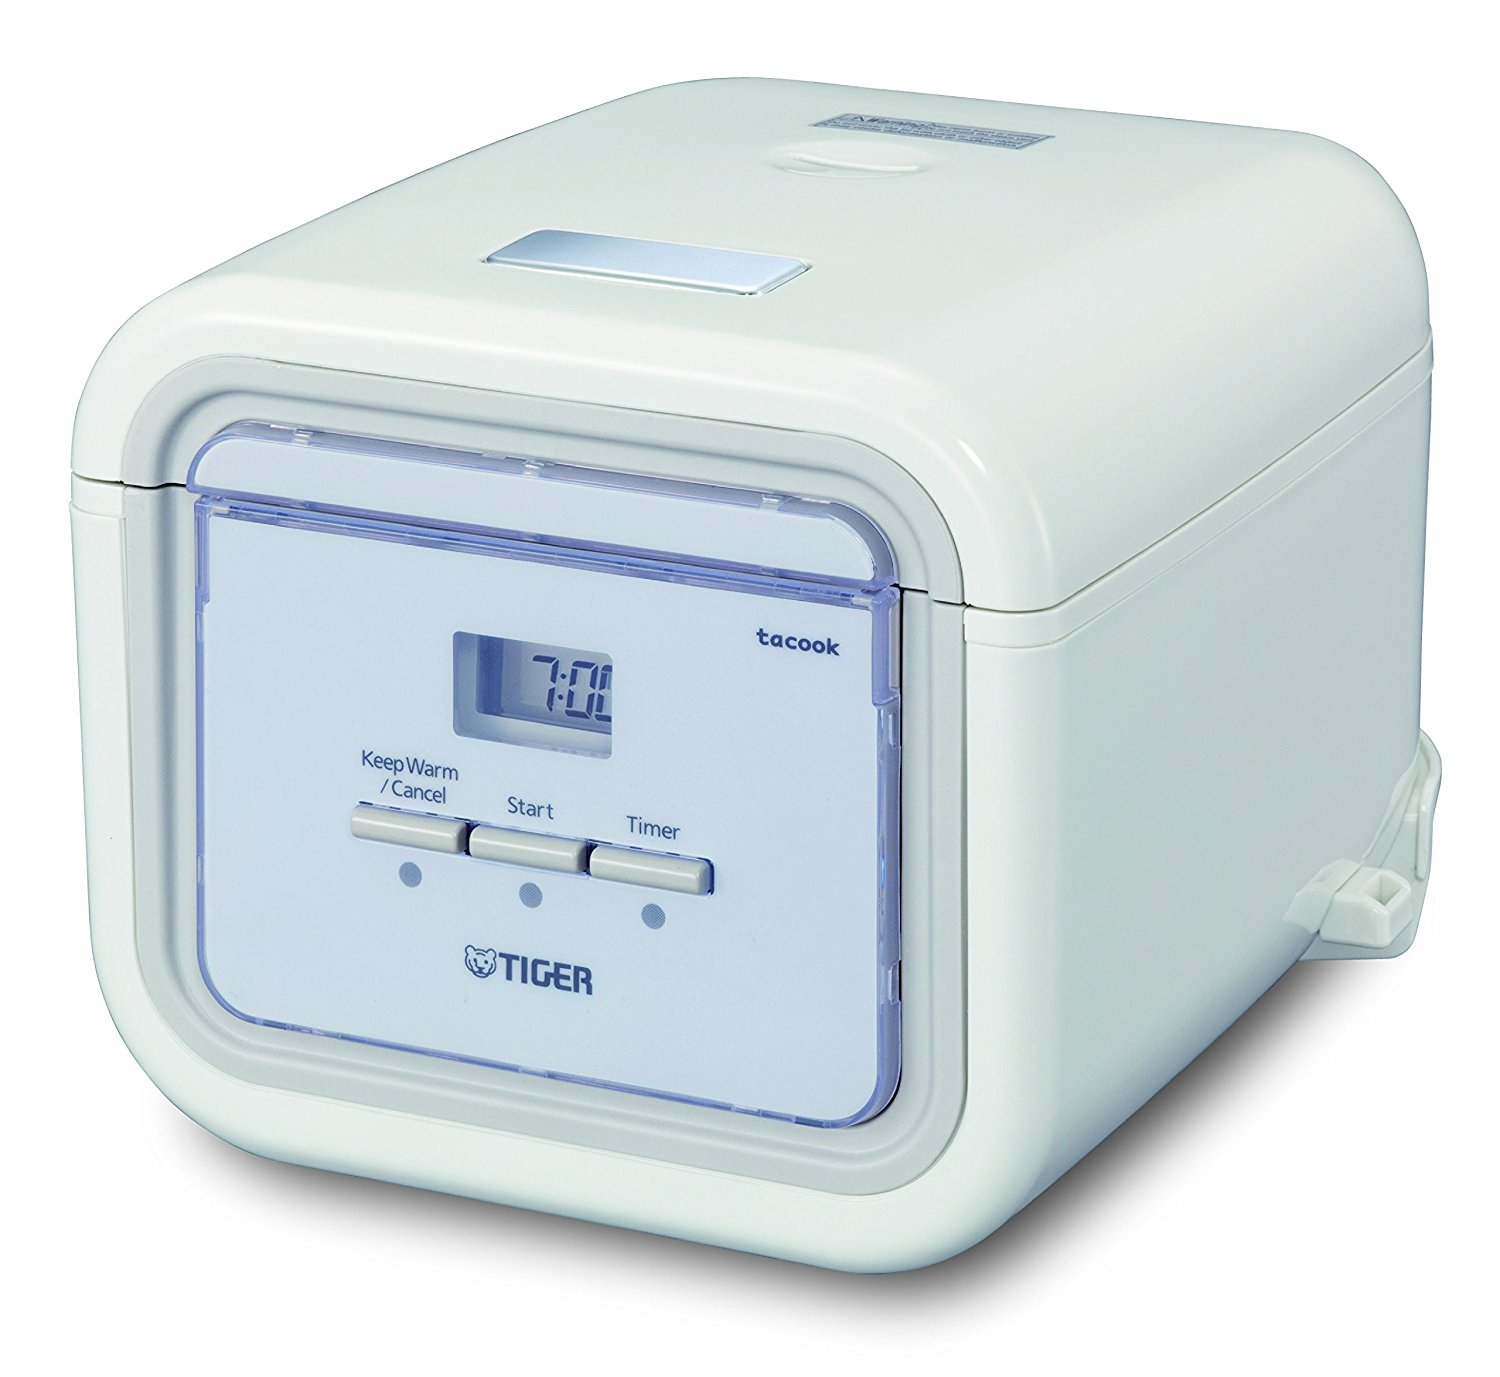 Tiger Corporation JAJ-A55U WS Rice Cooker - Small Rice Cooker